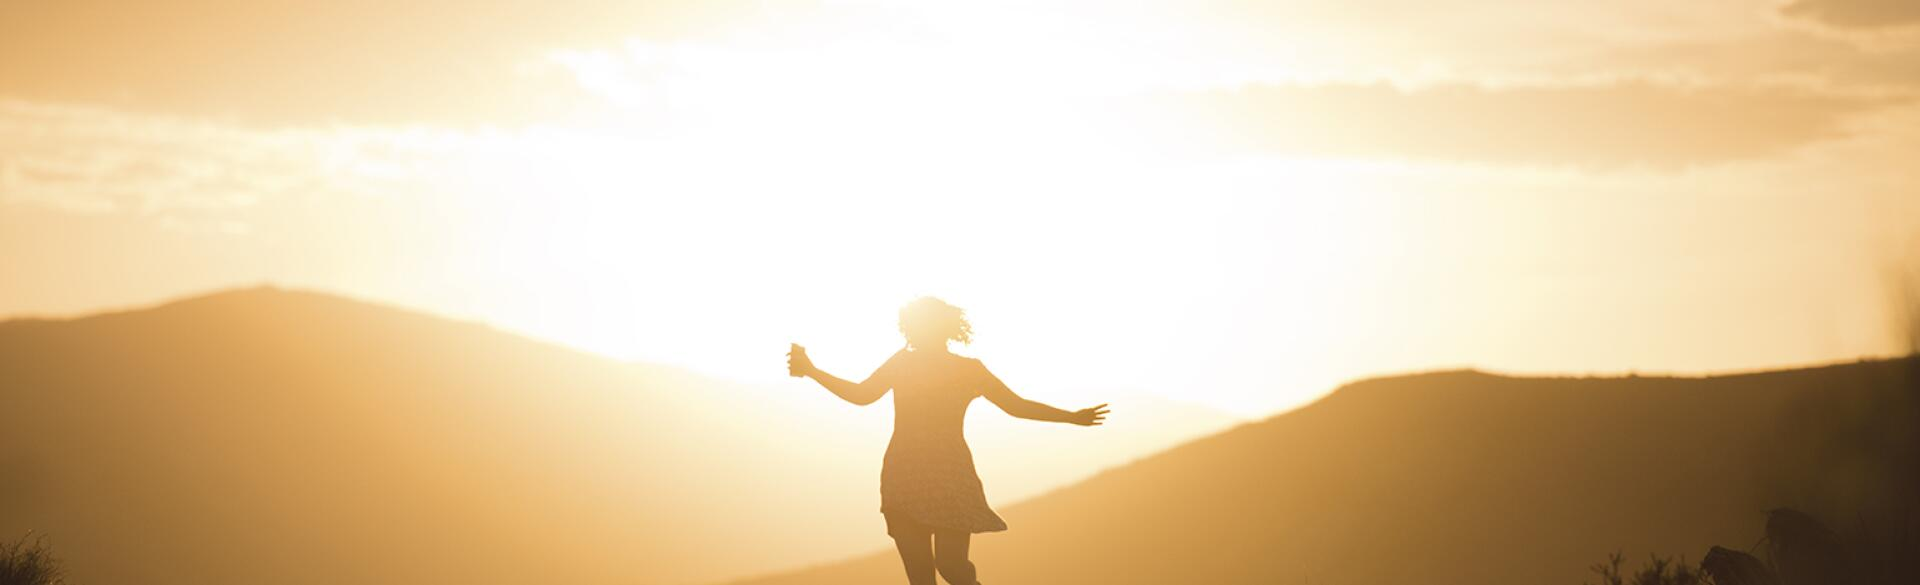 An image of a woman running carefree in the sunrise.